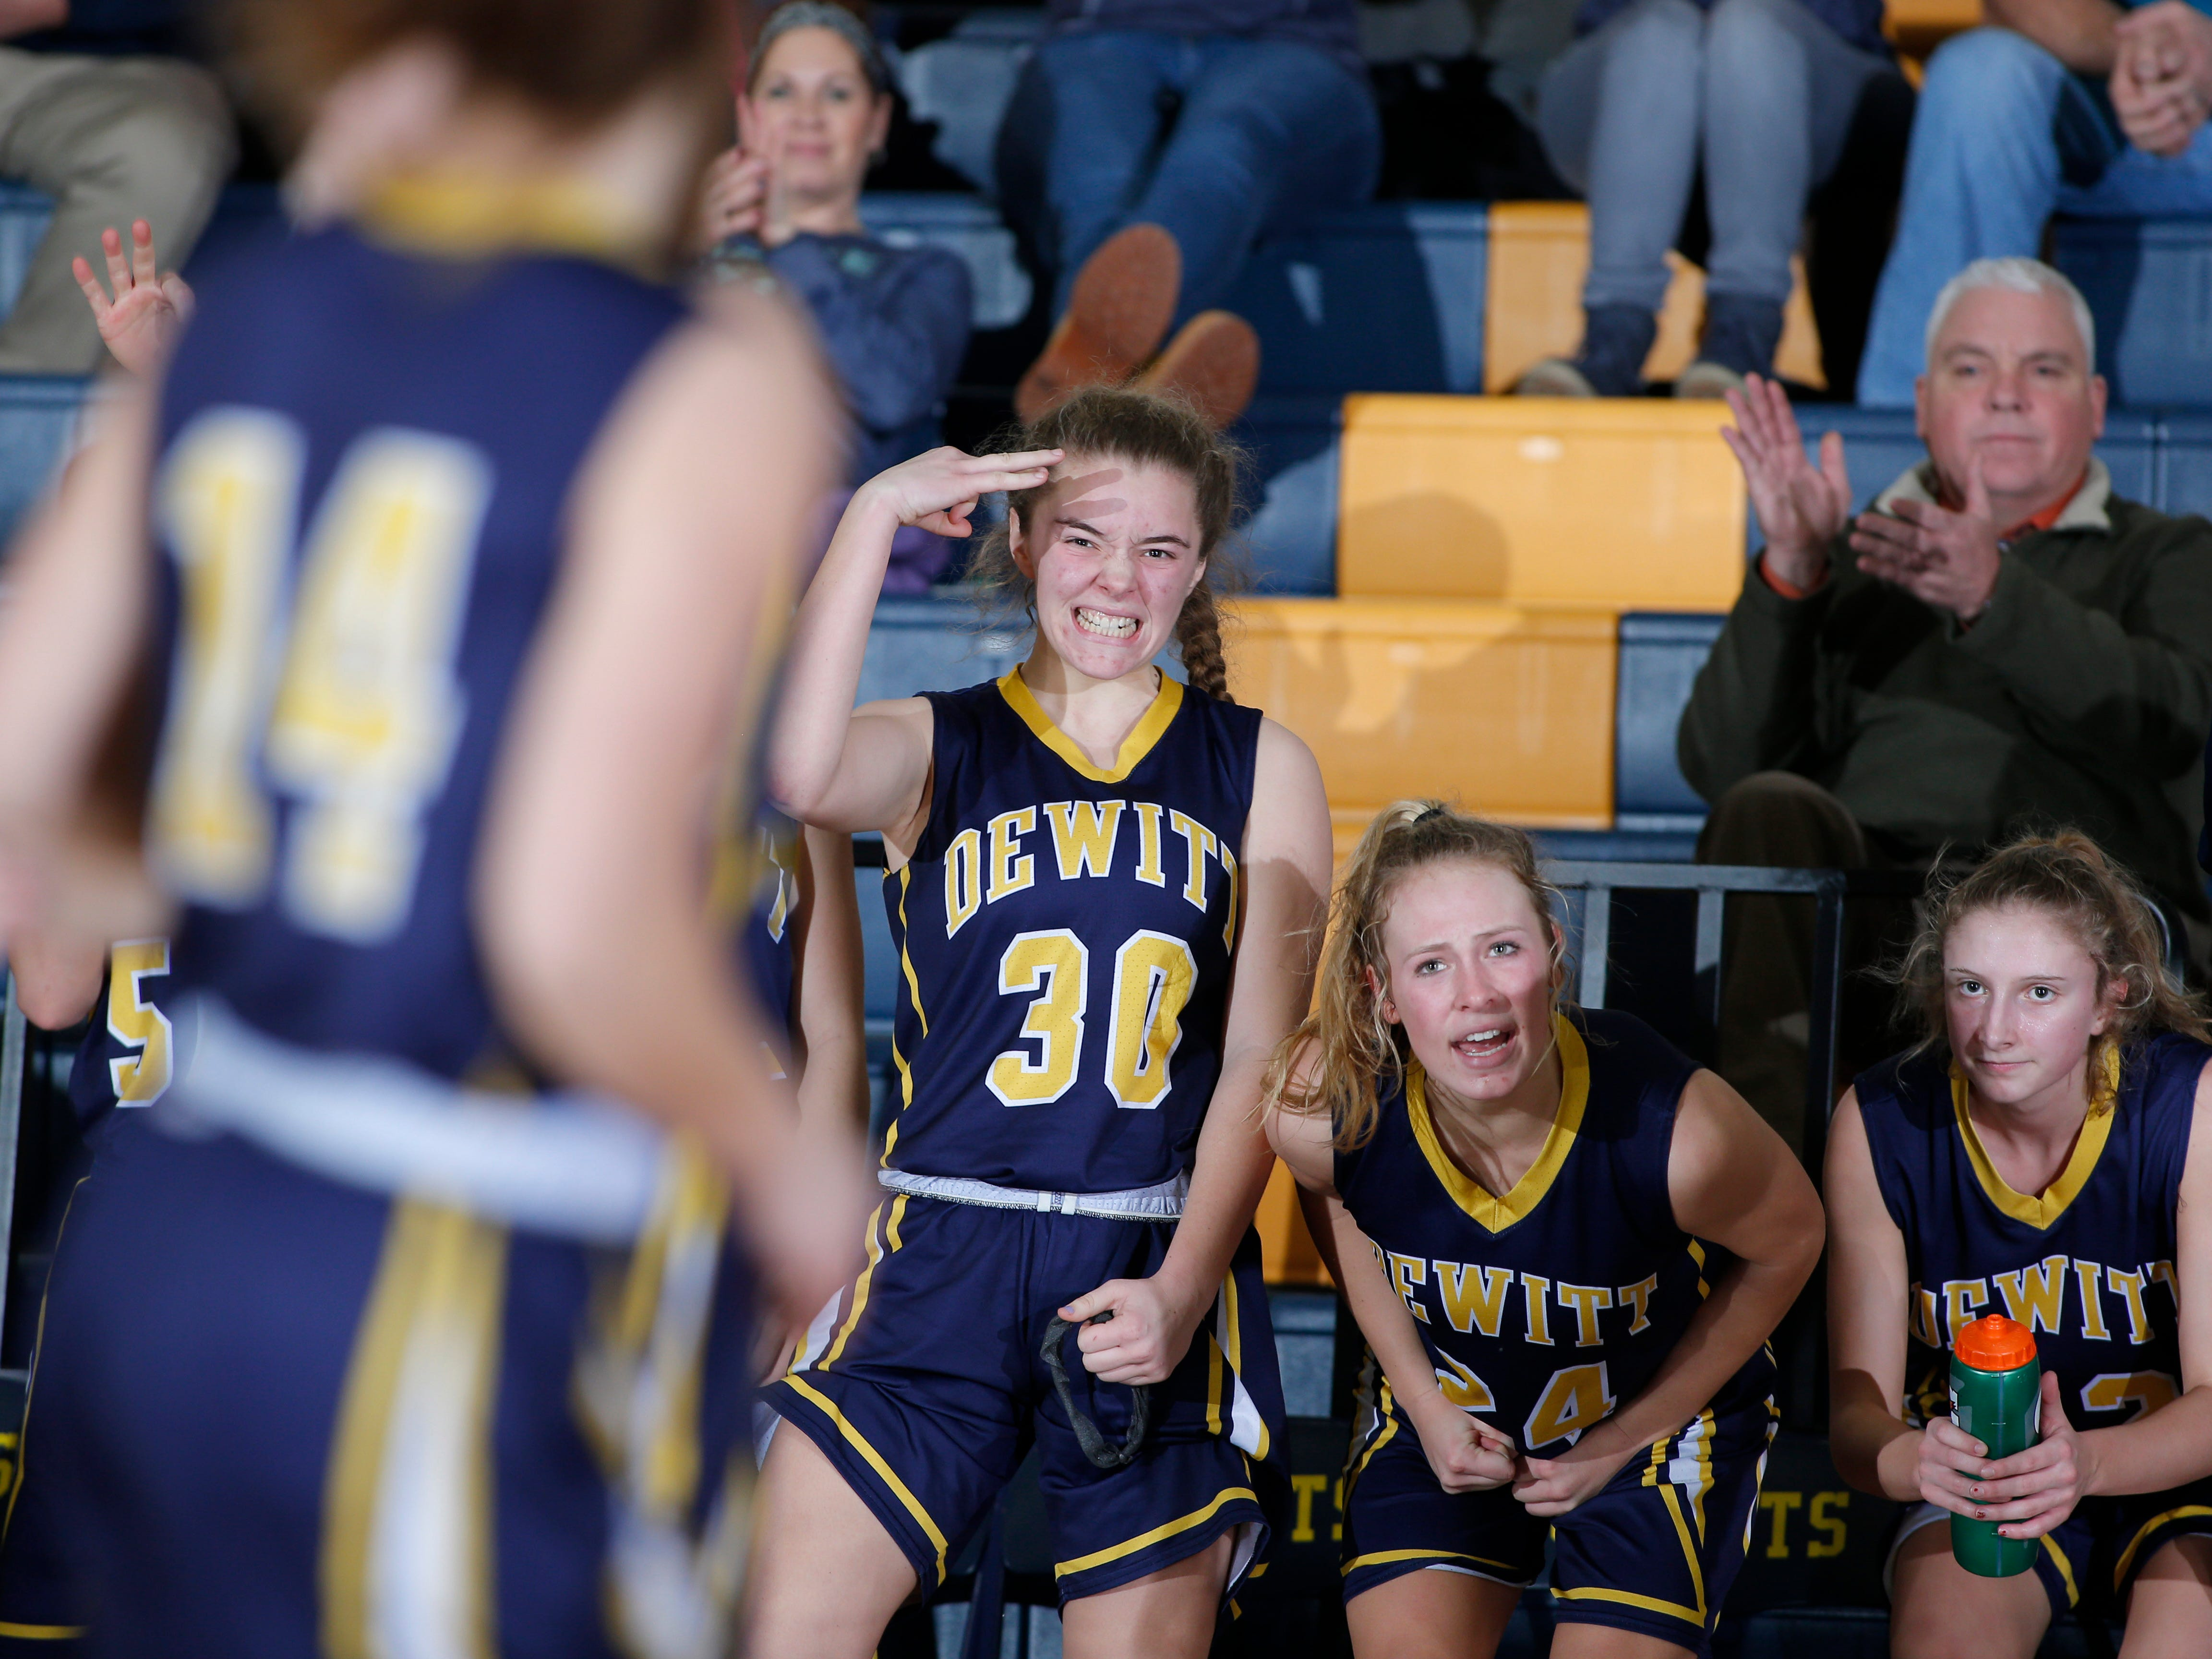 DeWitt starters on the bench, including Lily Stephan (30) and Annie McIntosh celebrate a play by reserves against Grand Ledge, Tuesday, Jan. 15, 2019, in Grand Ledge, Mich.